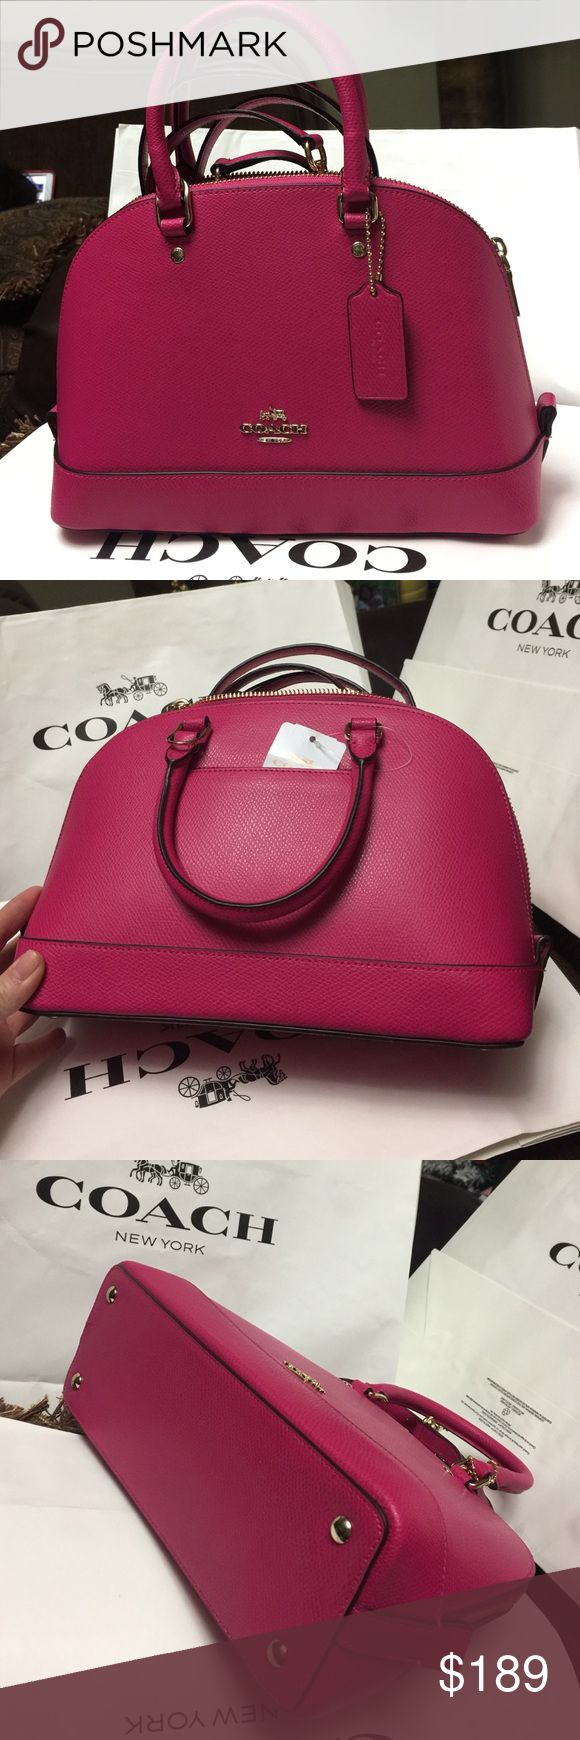 💝Coach Purse💝 100% Authentic Coach Purse, brand new with tag!.😍😍😍color Pink Ruby.💖💖💖 Coach Bags Crossbody Bags